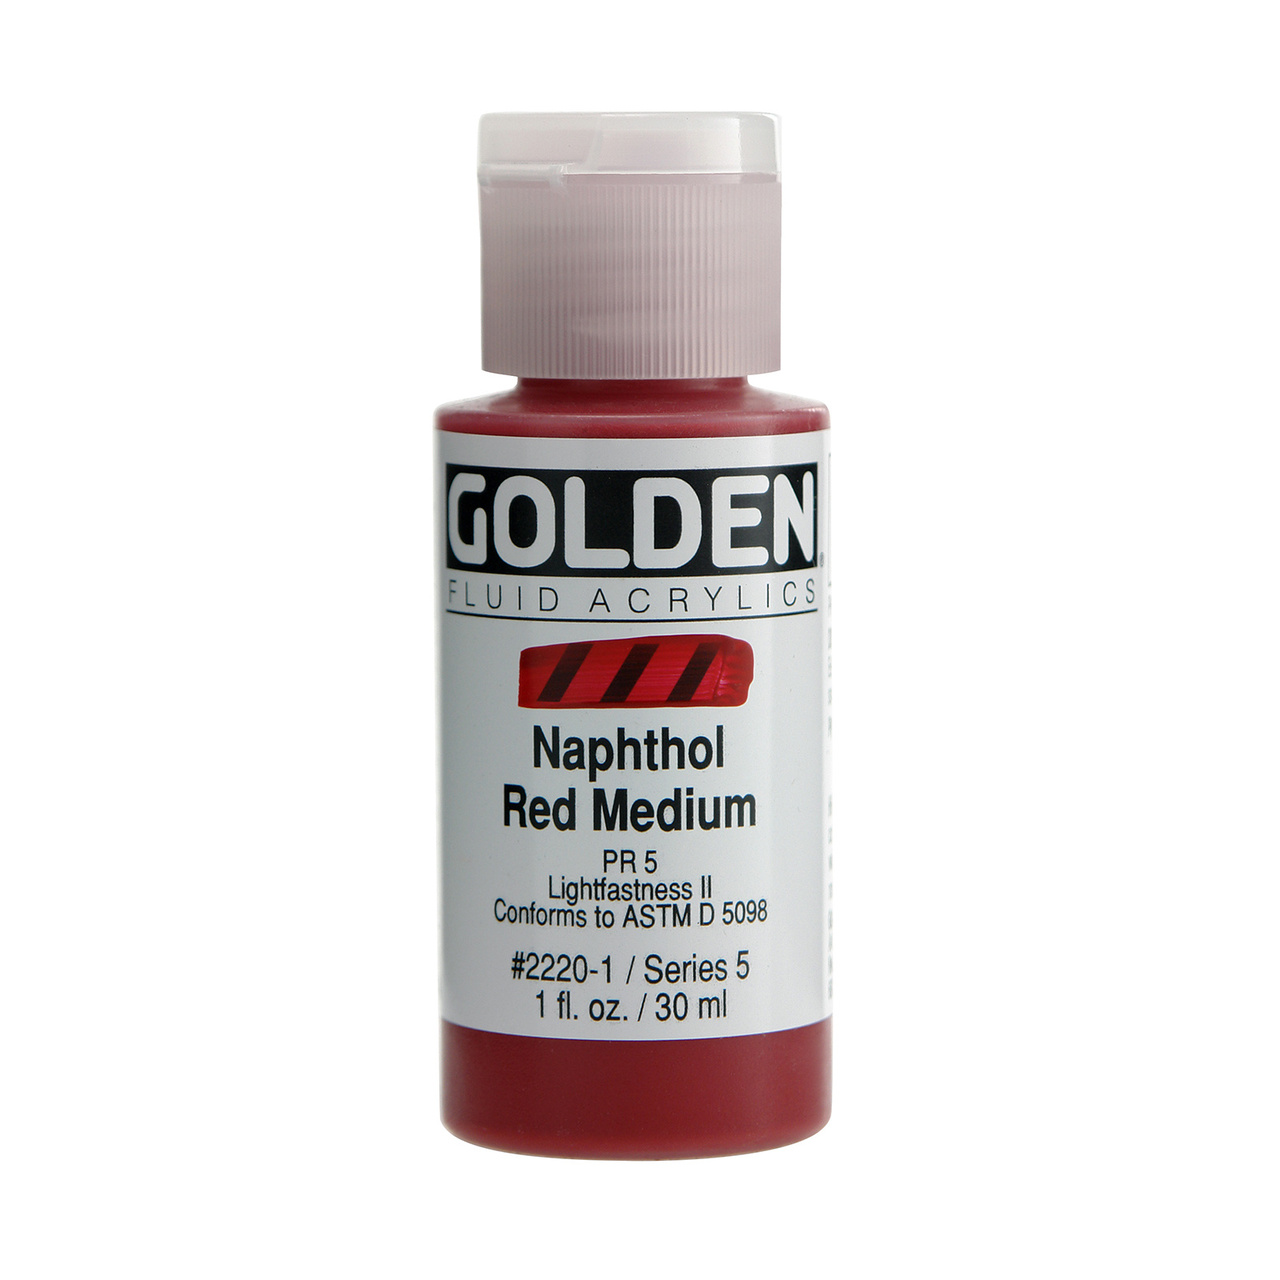 FLUID ACRYLIC 1OZ NAPHTH RED MED